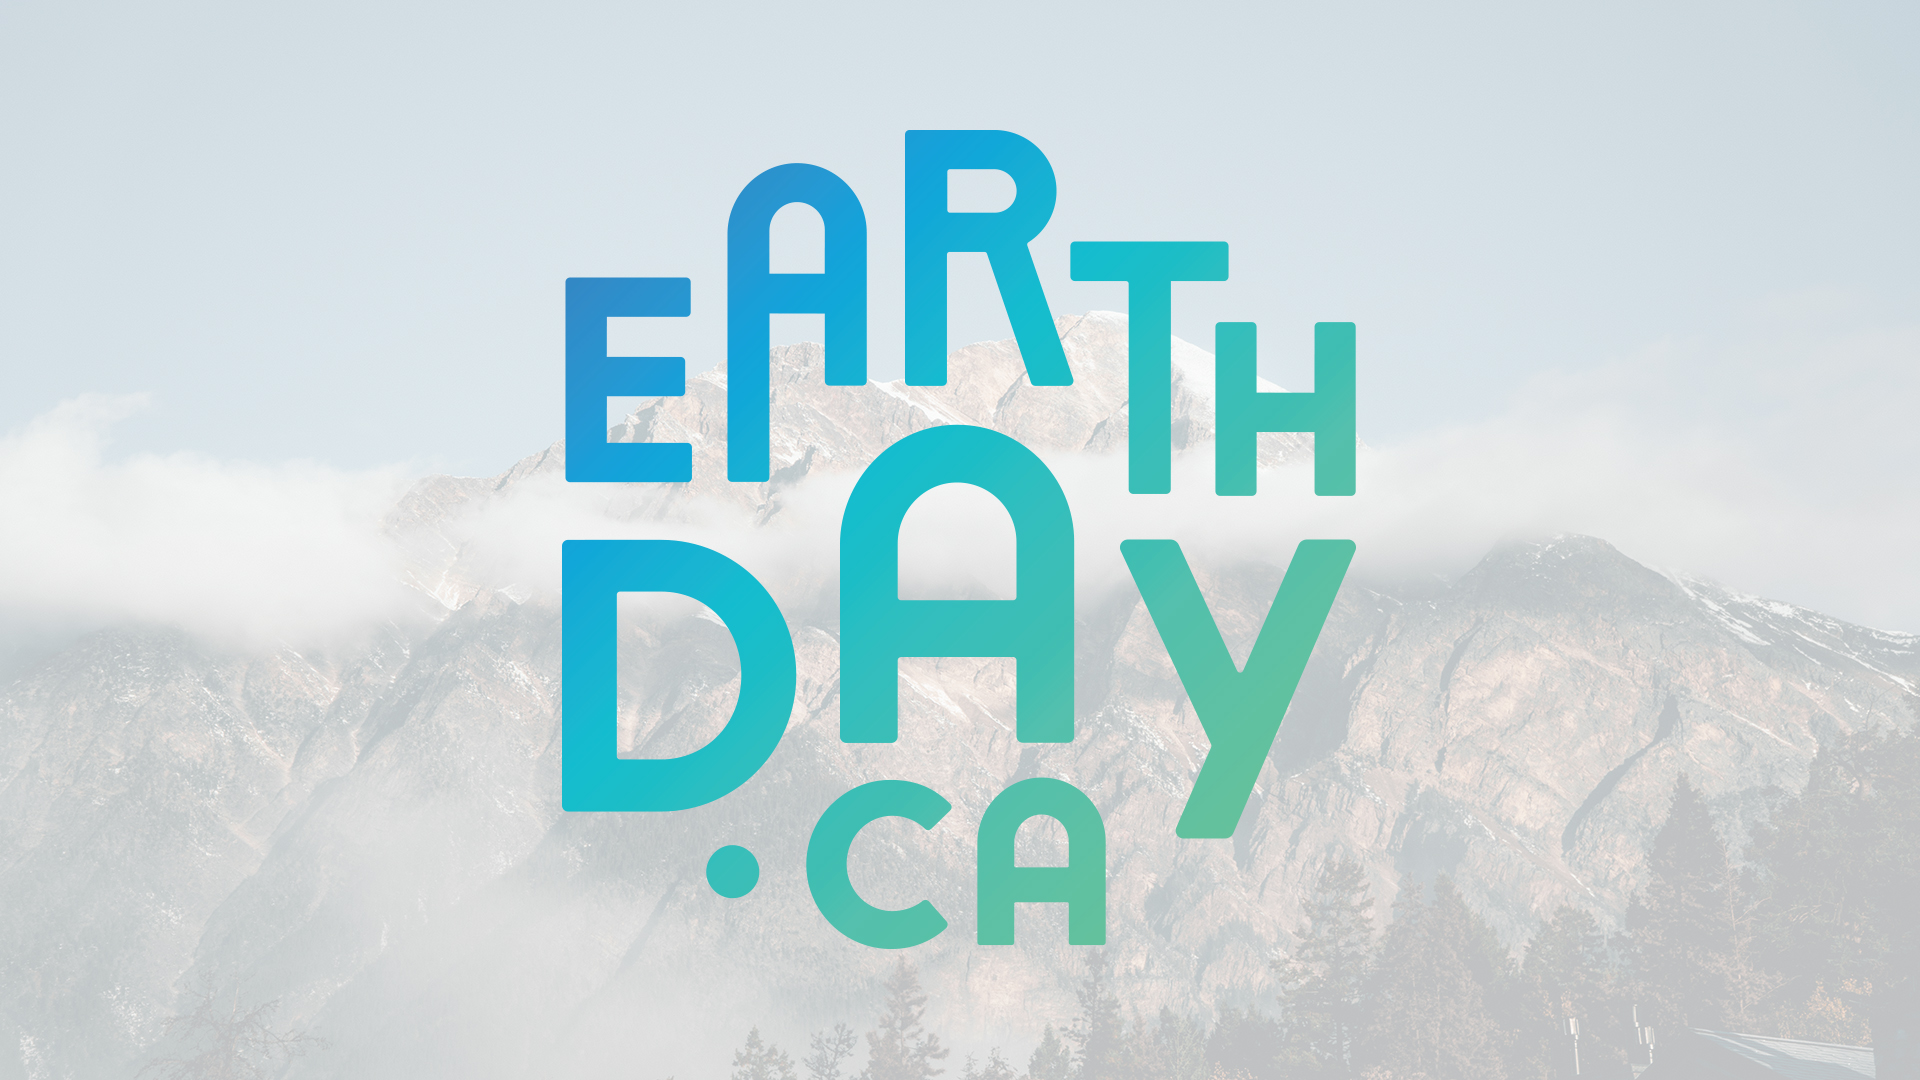 our_de_la_terre_quebec_qc_nouvelle_alliance_earth_day_canada